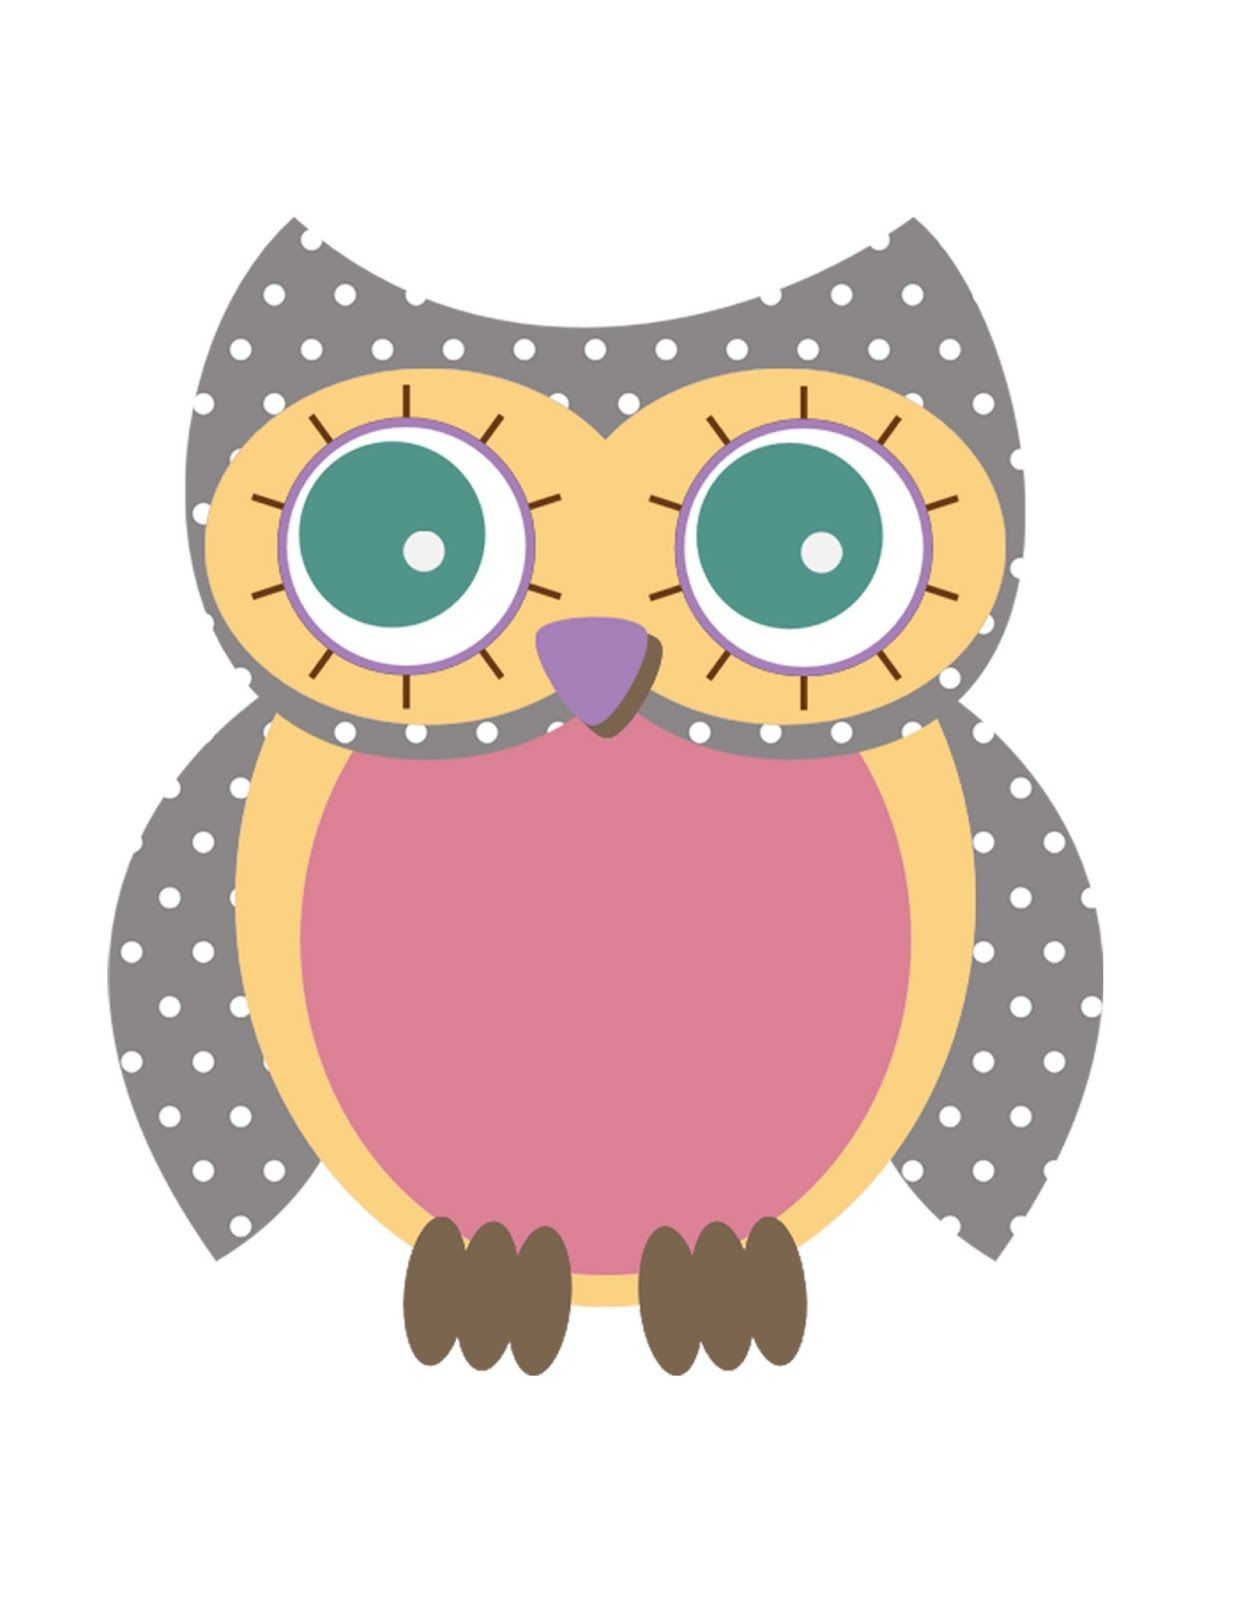 Effortless image with printable owl patterns